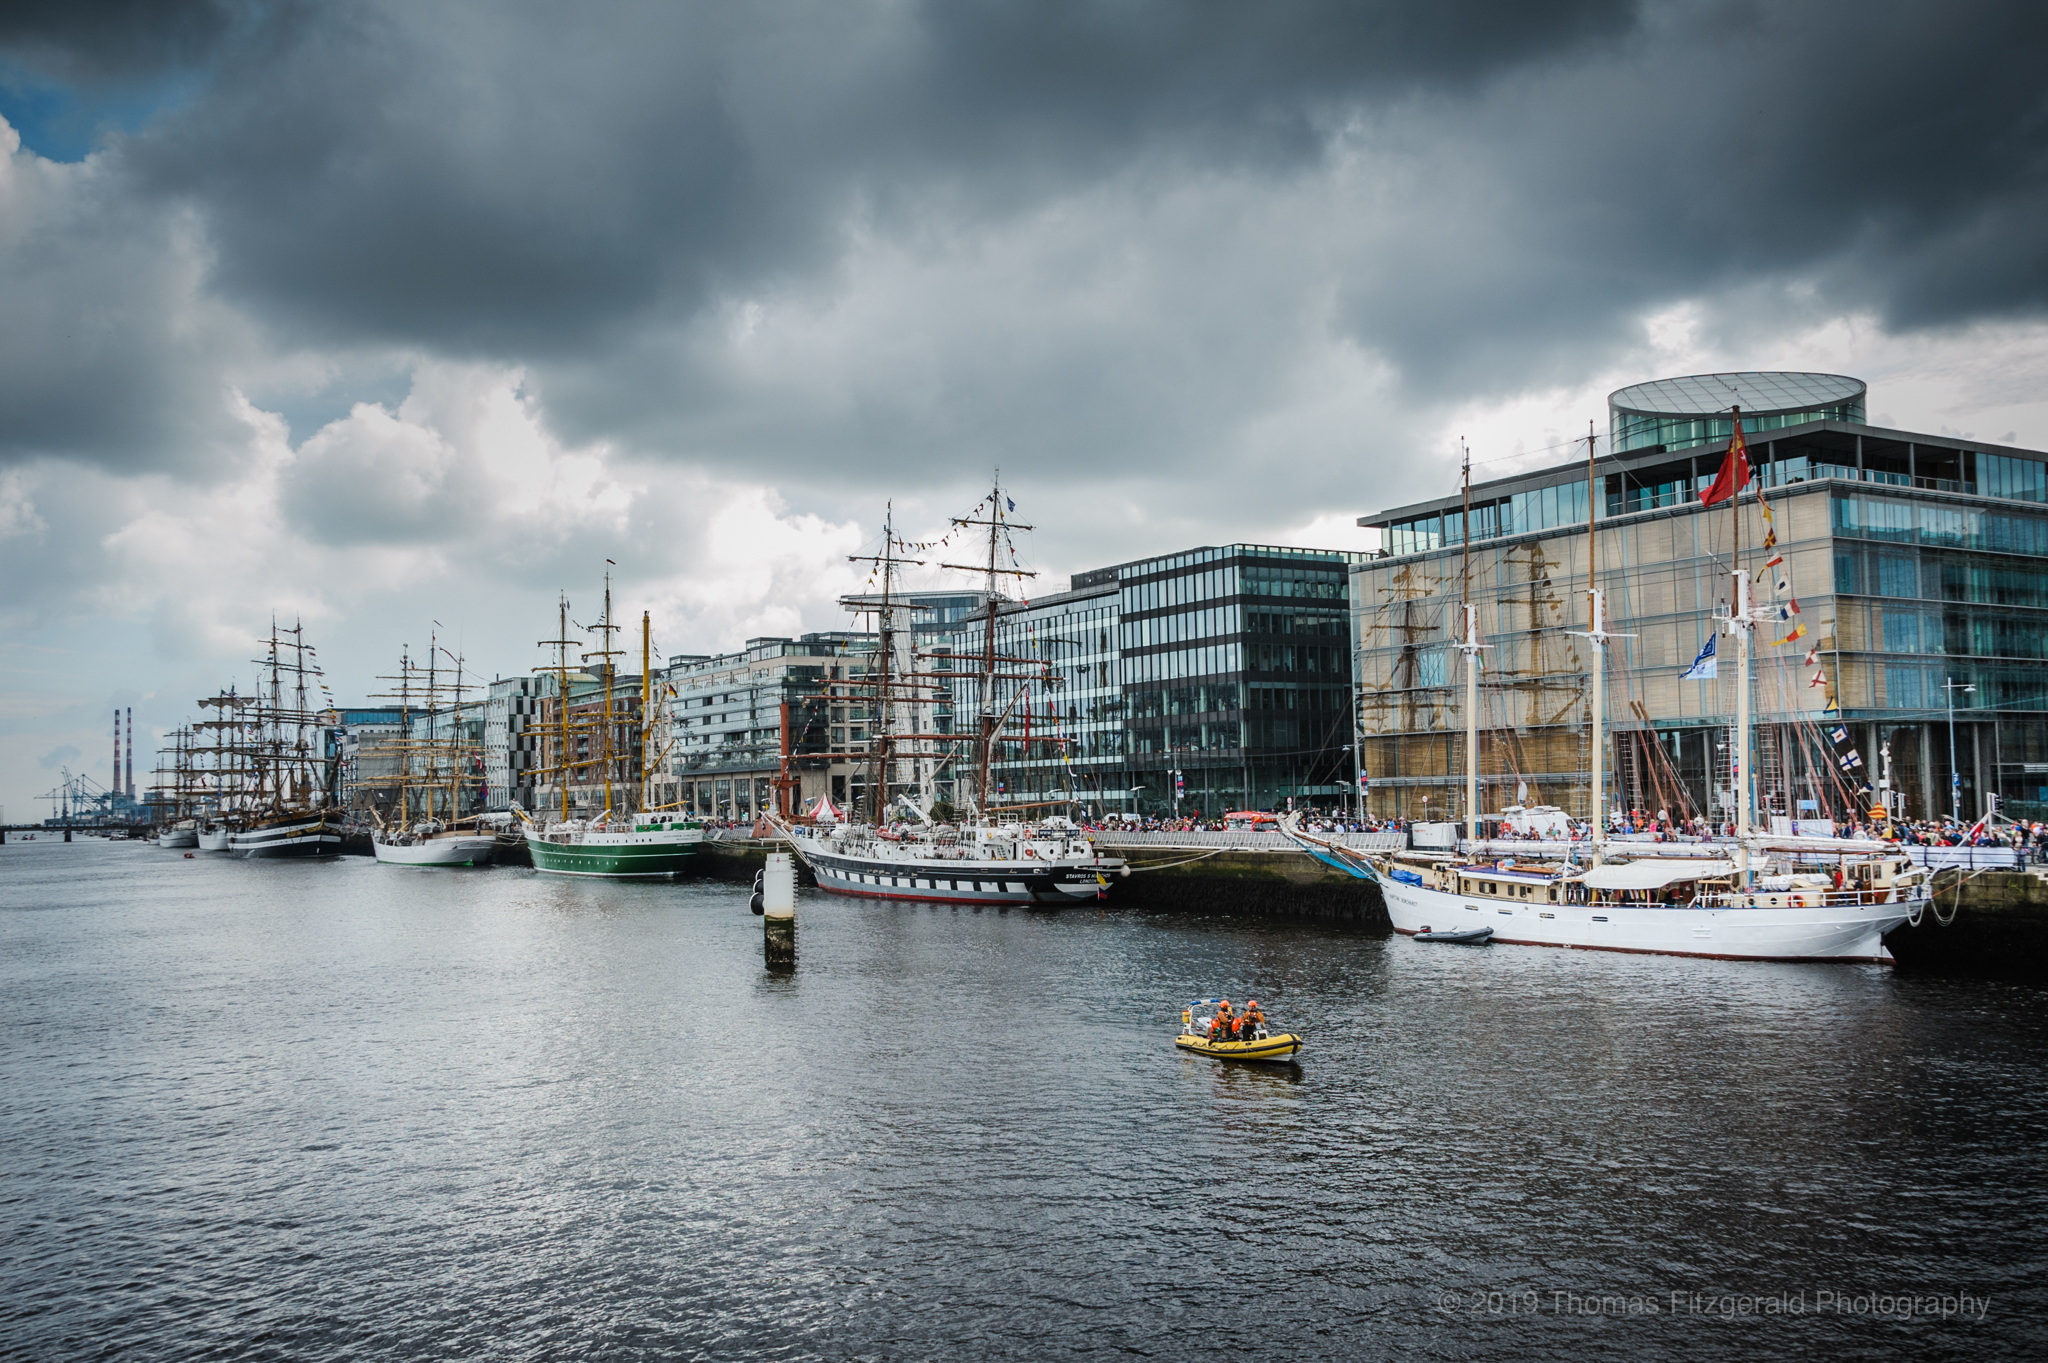 Photo of the Day: Tall Ships by the Lffey during last years Tall